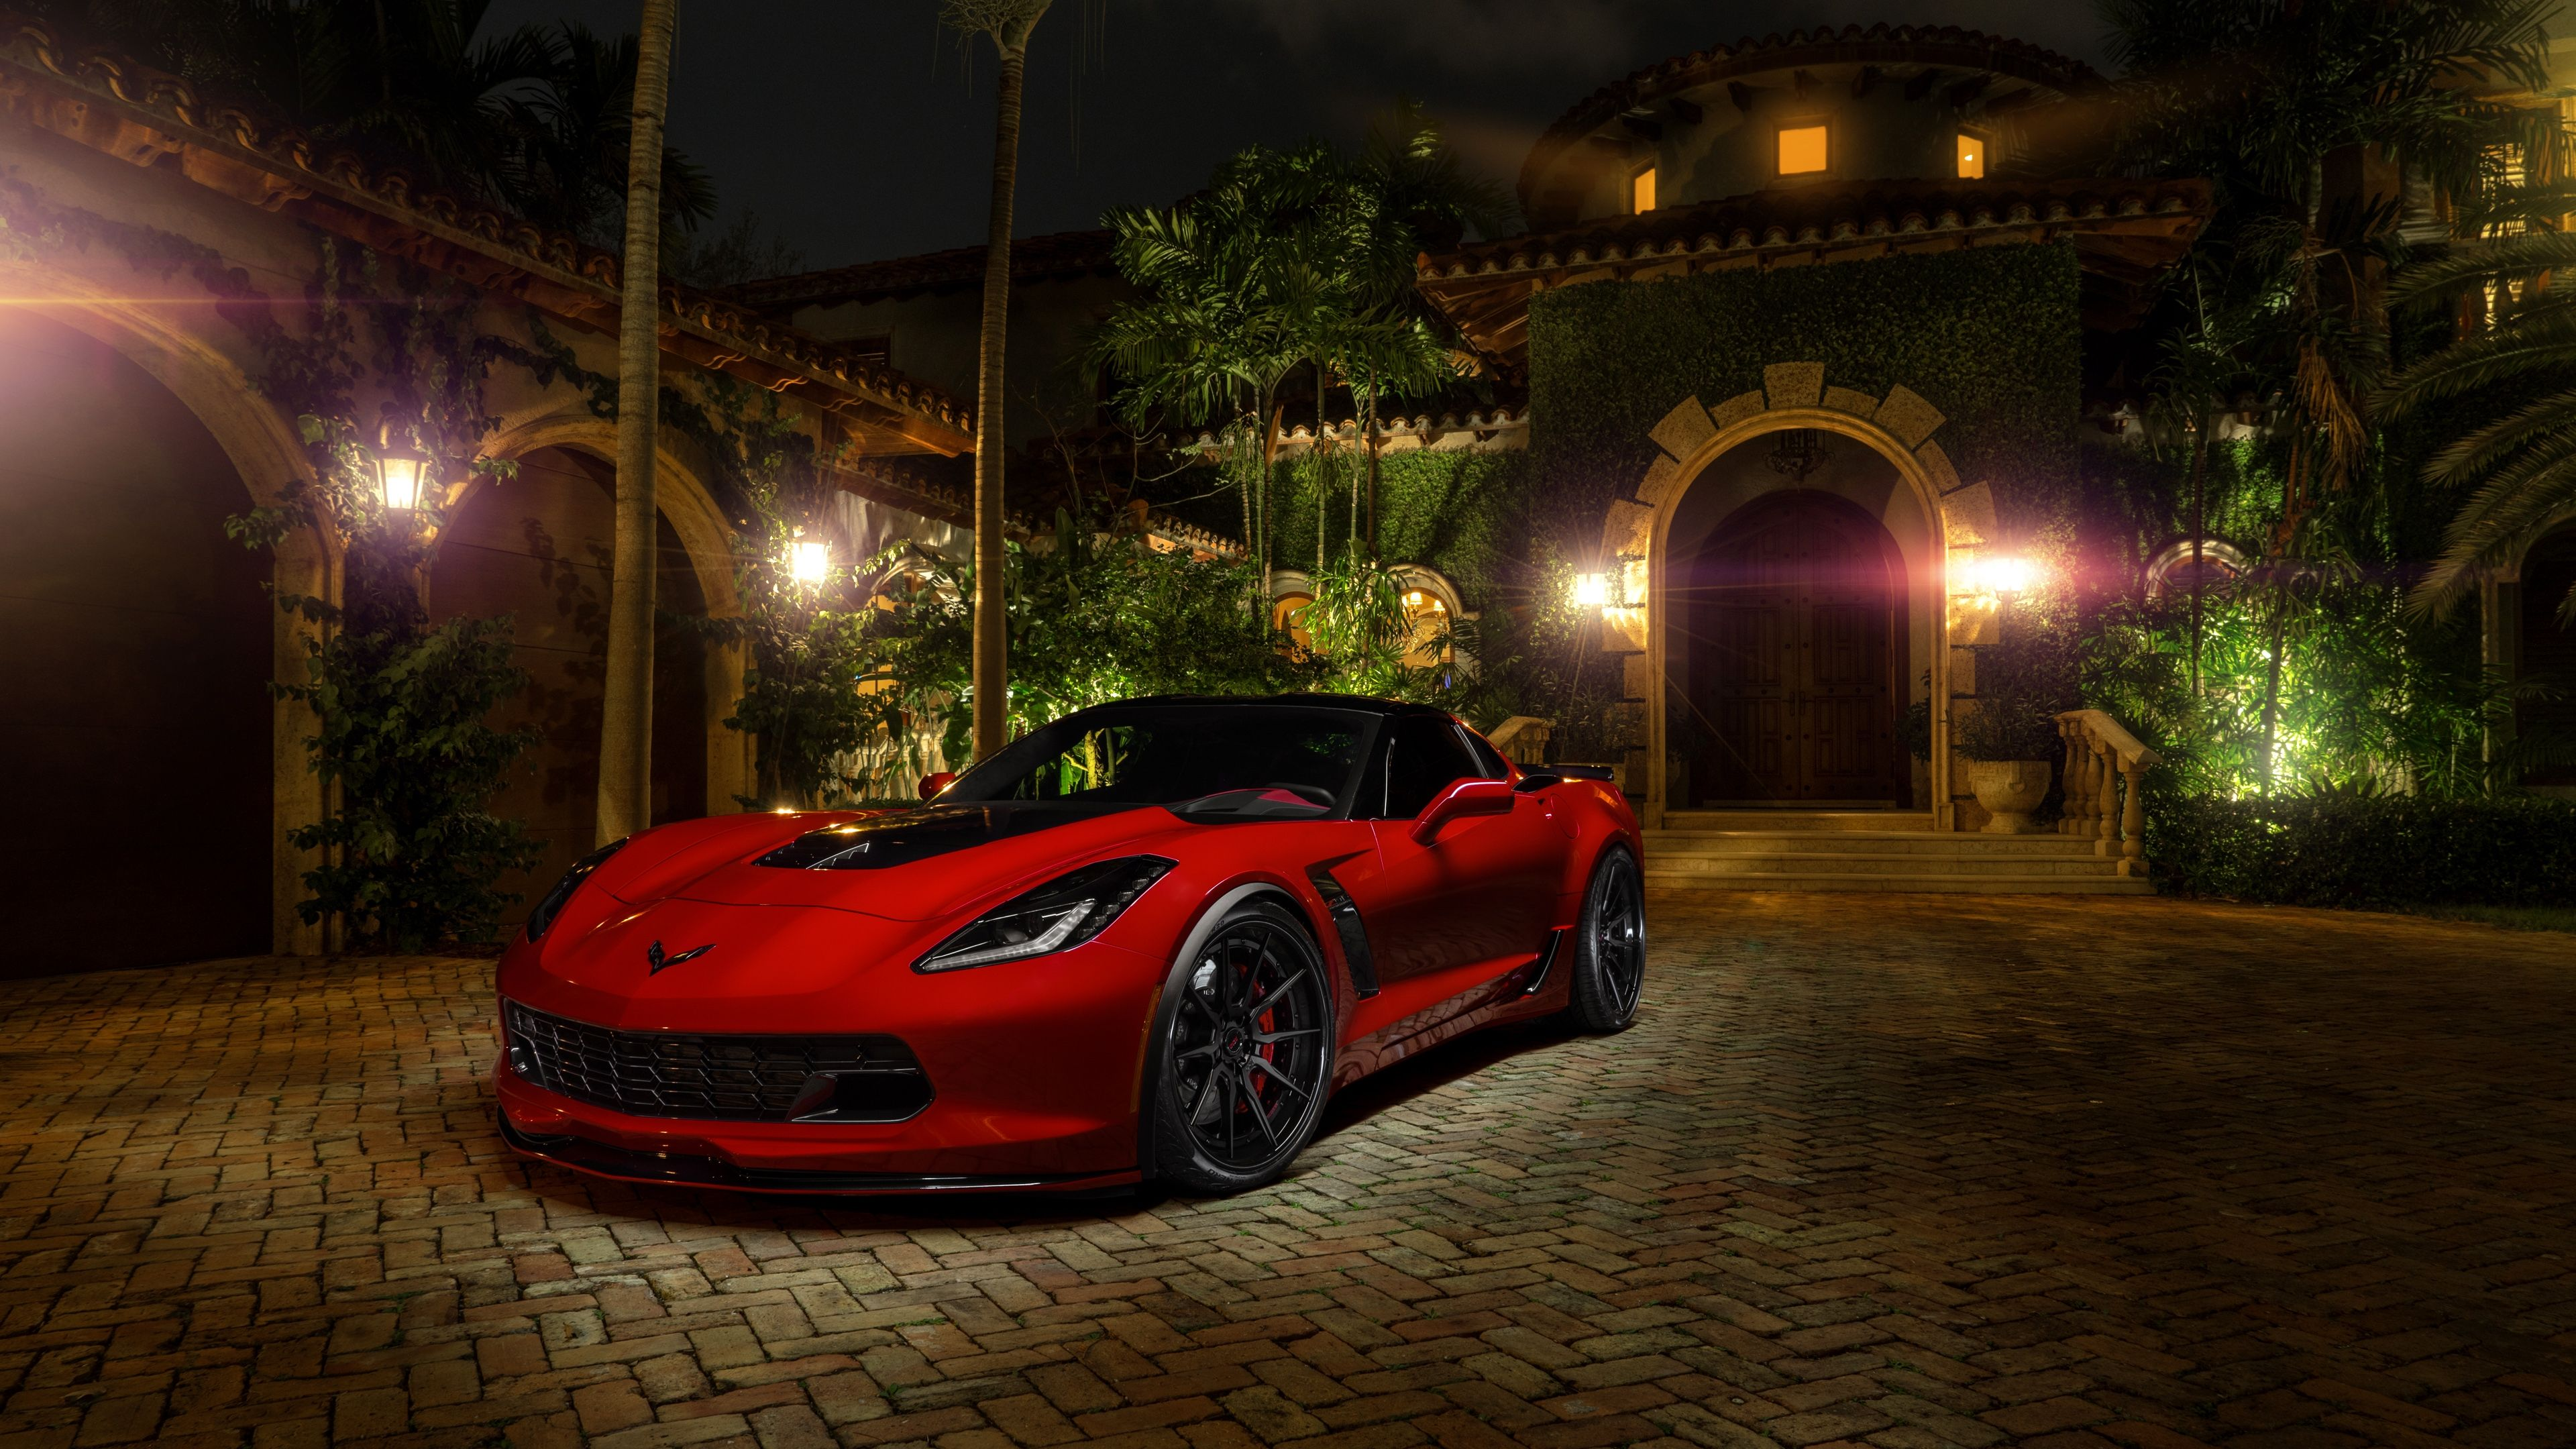 Amazing Corvette Z06 C7 Crystal City Car 2014 Blue Neon | Corvette | Pinterest |  Corvette, Chevrolet Corvette And 2015 Wallpaper